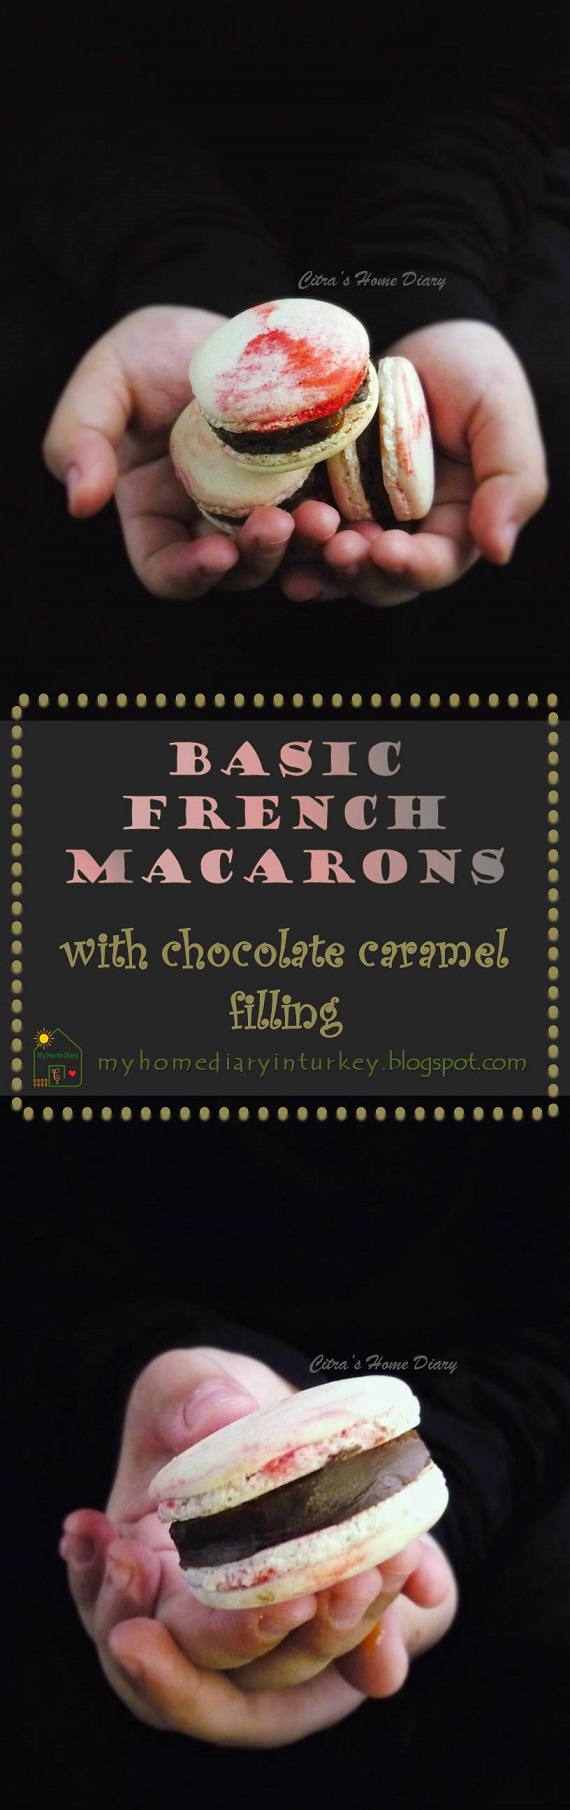 My Basic French Macarons with Chocolate caramel Filling| Çitra's Home Diary. #macaronsrecipe #frenchmacarons #cookiesrecipe #chocolateganache #caramelmacaronsfilling #dessert #caramelfrosting